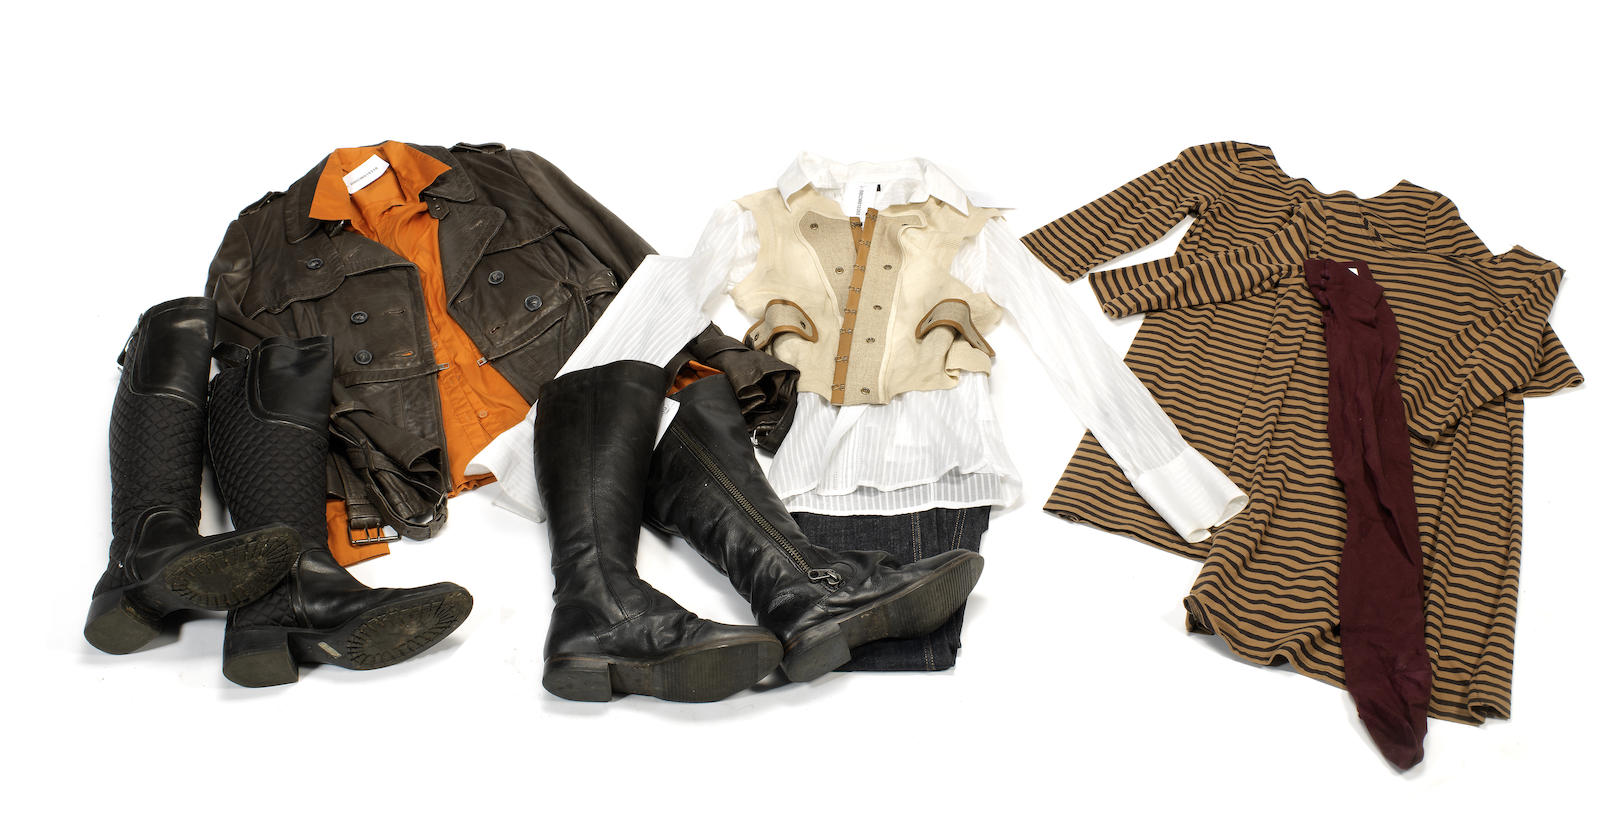 Bonhams Entertainment Memorabilia Auction Dec 15 - Costumes worn by Elisabeth Sladen (Credit: Bonhams)